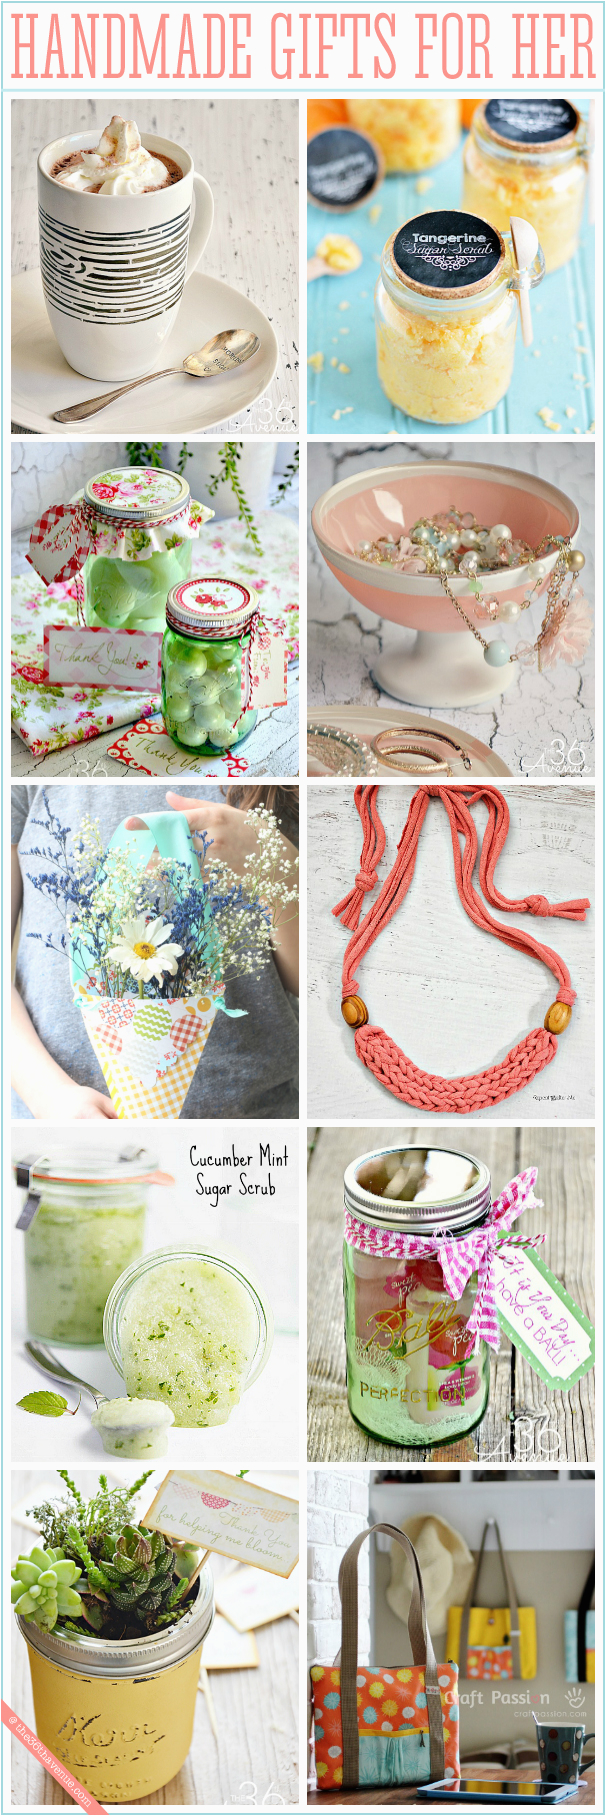 Homemade Birthday Gift Ideas for Her Handmade Gifts for Women the 36th Avenue